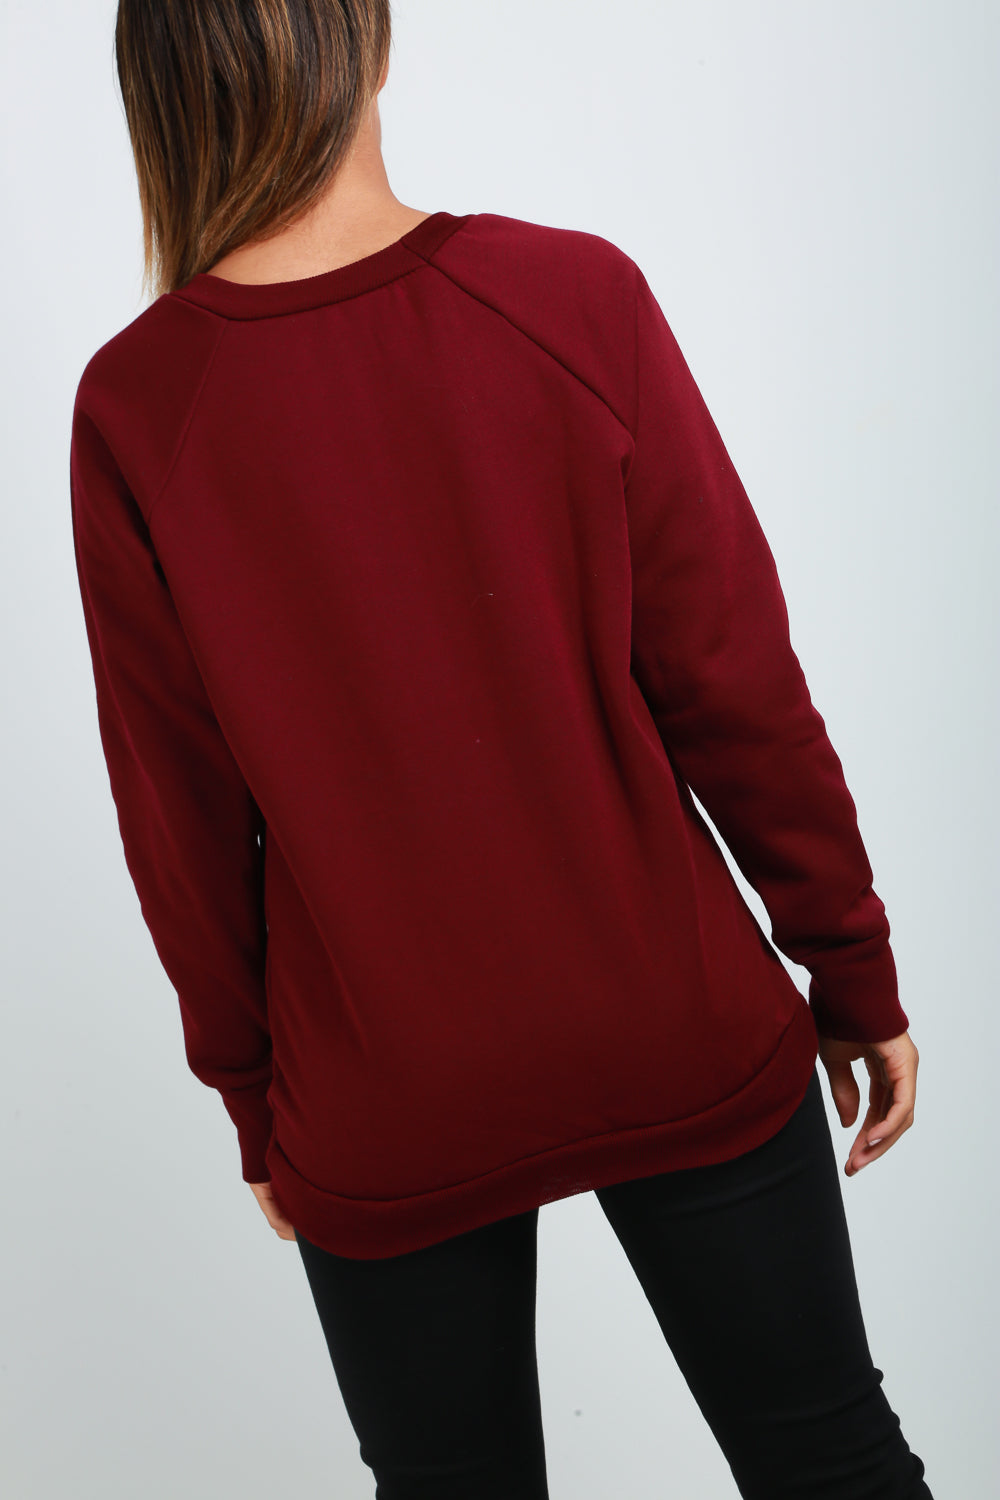 Long Sleeve Graphic Skull Print Burgundy Sweatshirt - bejealous-com